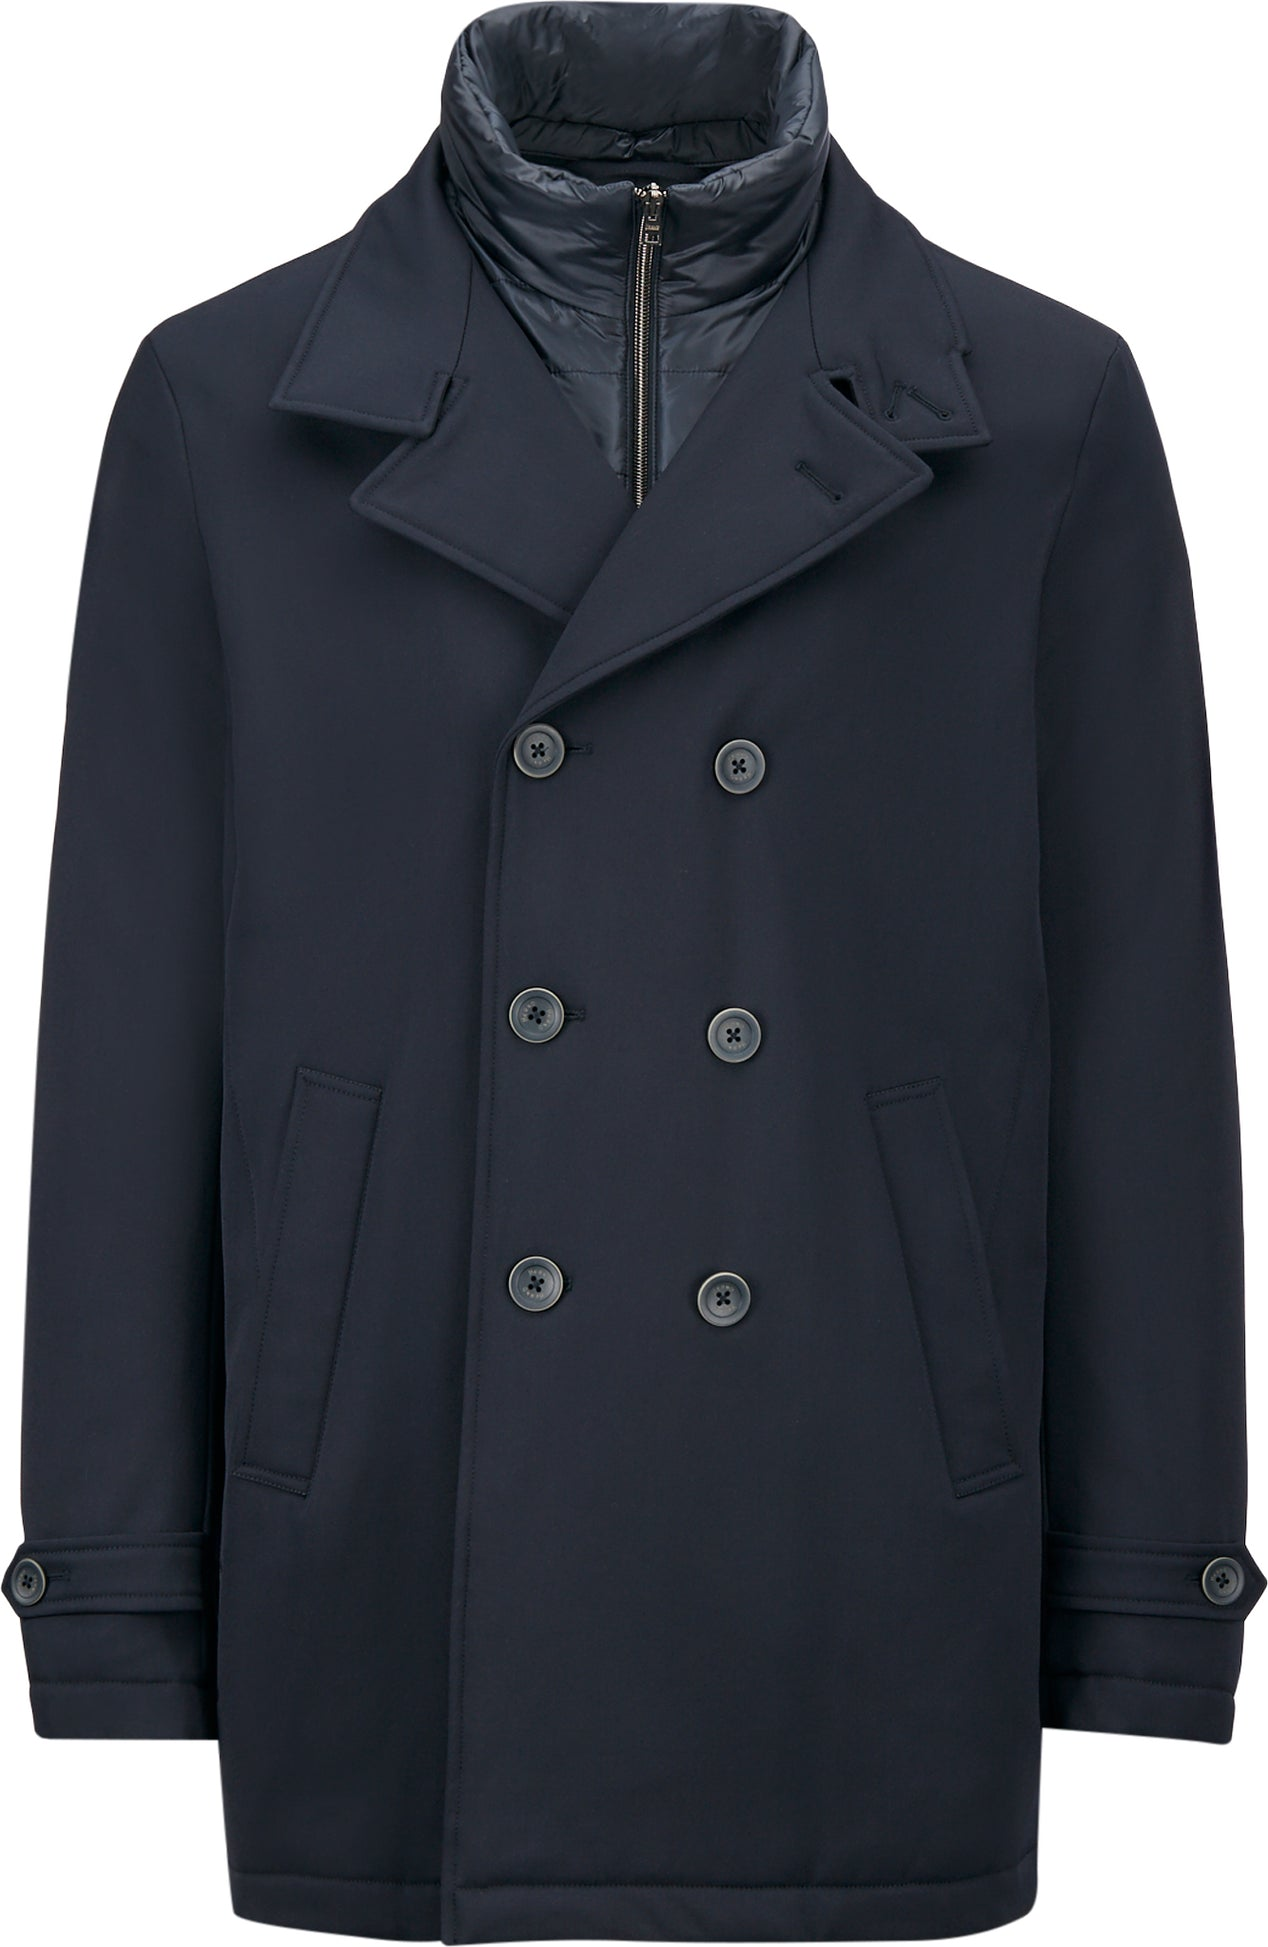 60% discount super cheap compares to authorized site Herno Storm System Wool Peacoat - Men's